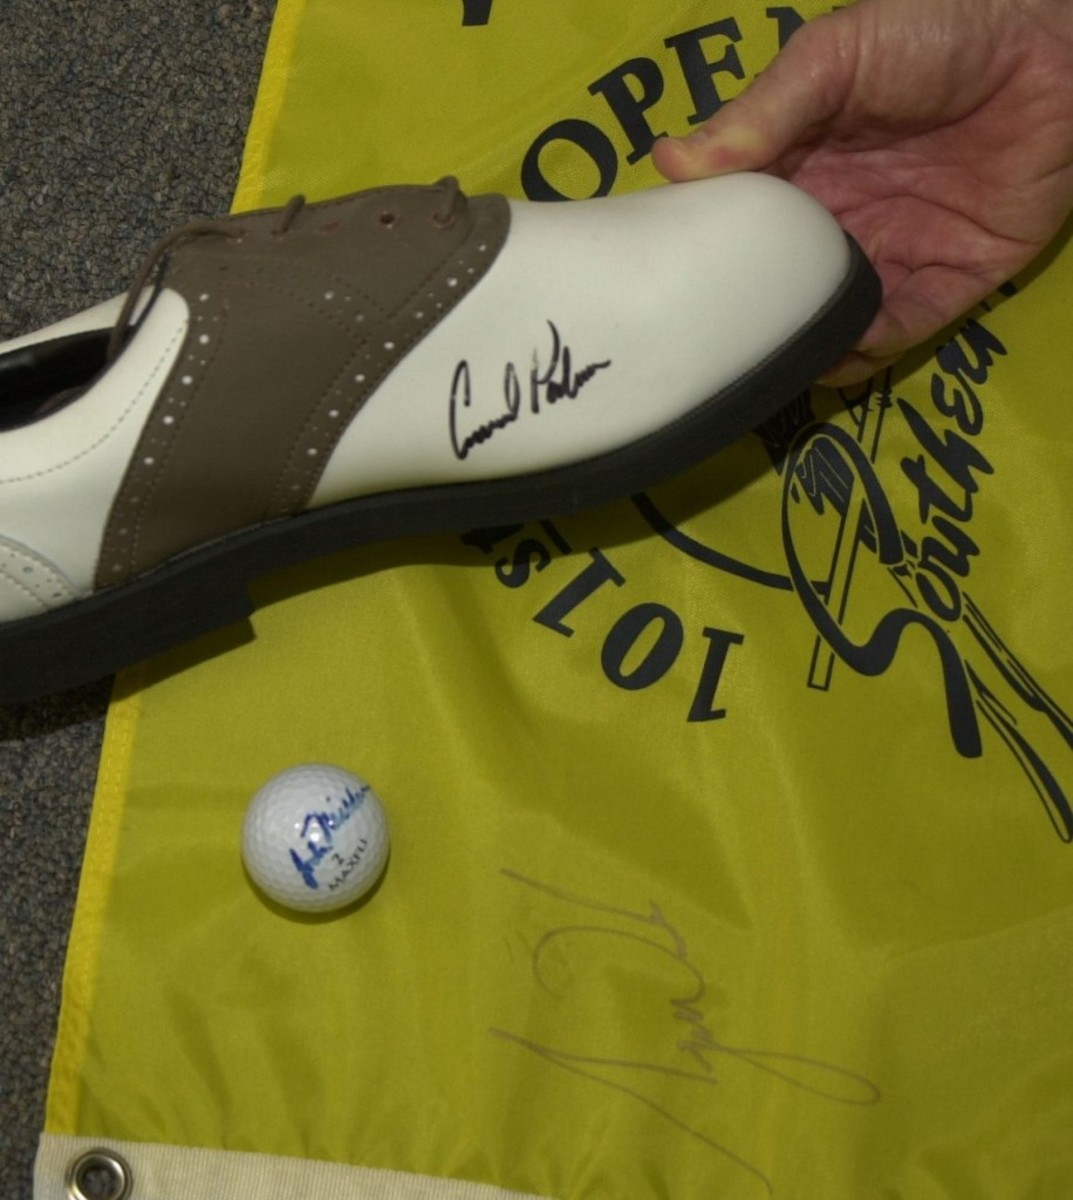 The forged signatures of two of golf's legendary names, Arnold Palmer and Jack Nicklaus.